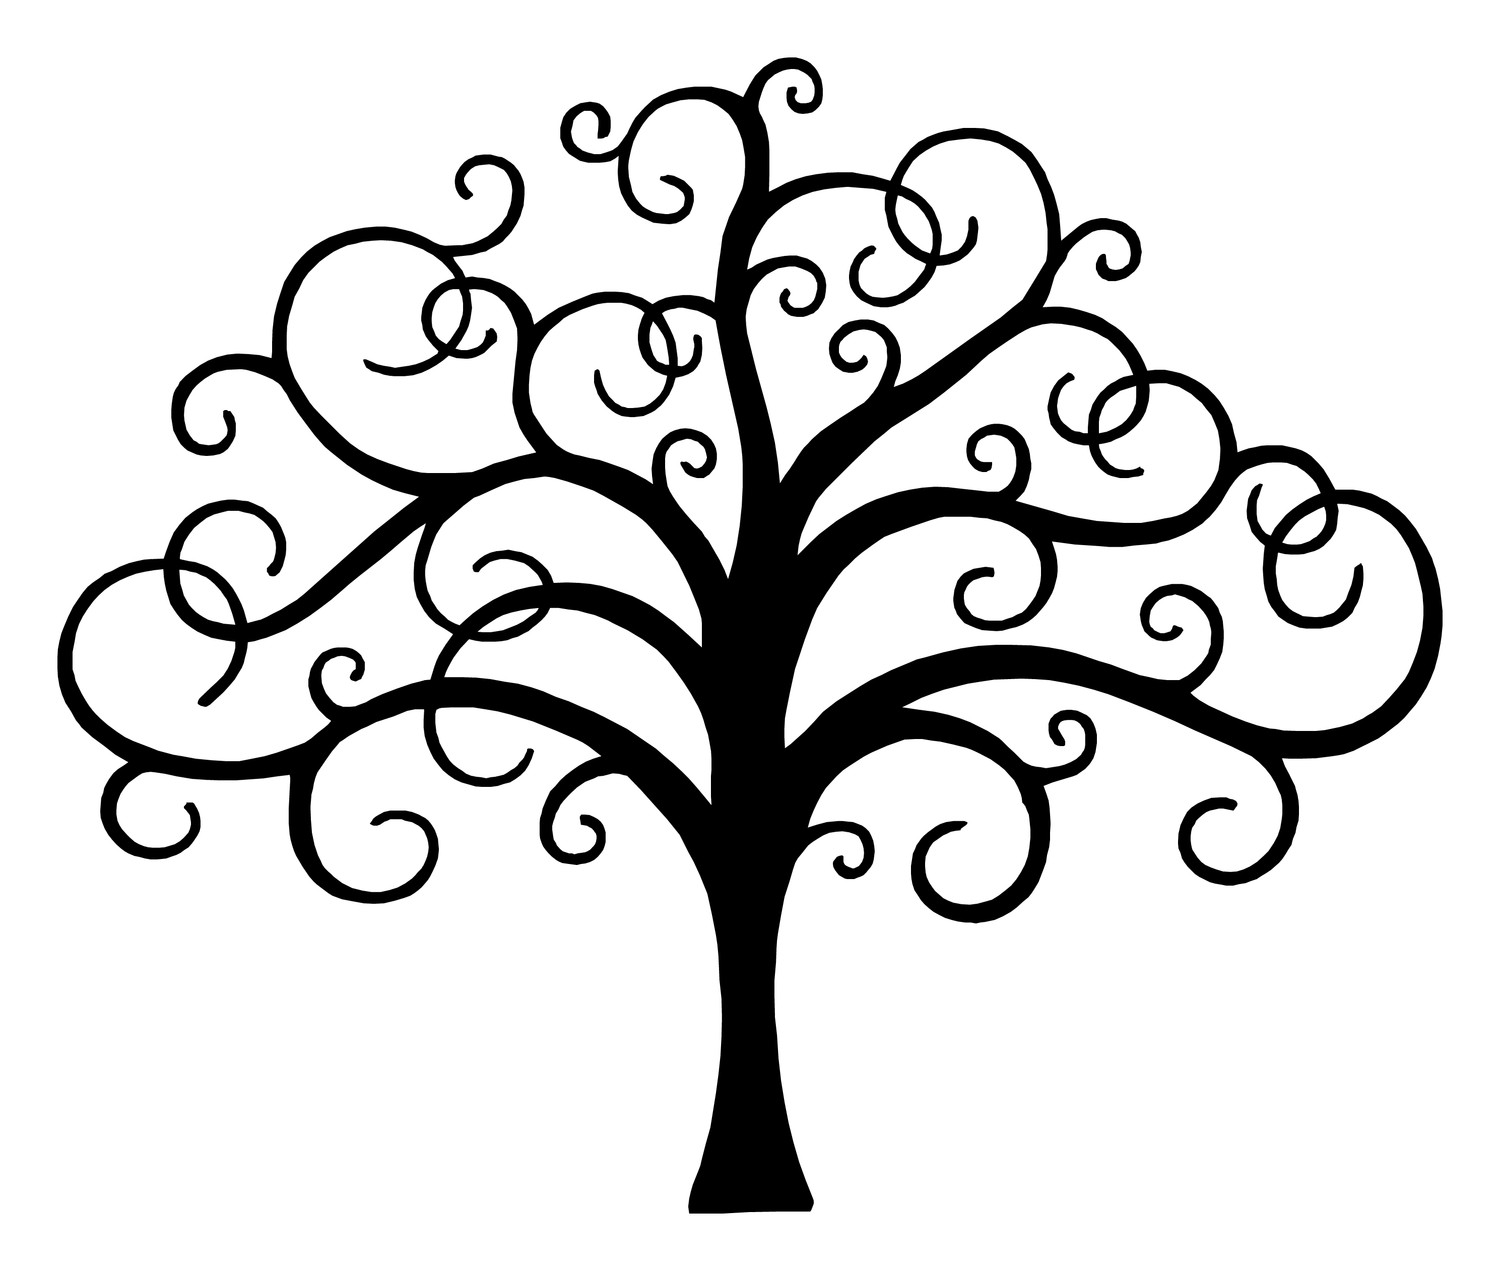 simple tree. lds tree of life clipart clipart panda free.